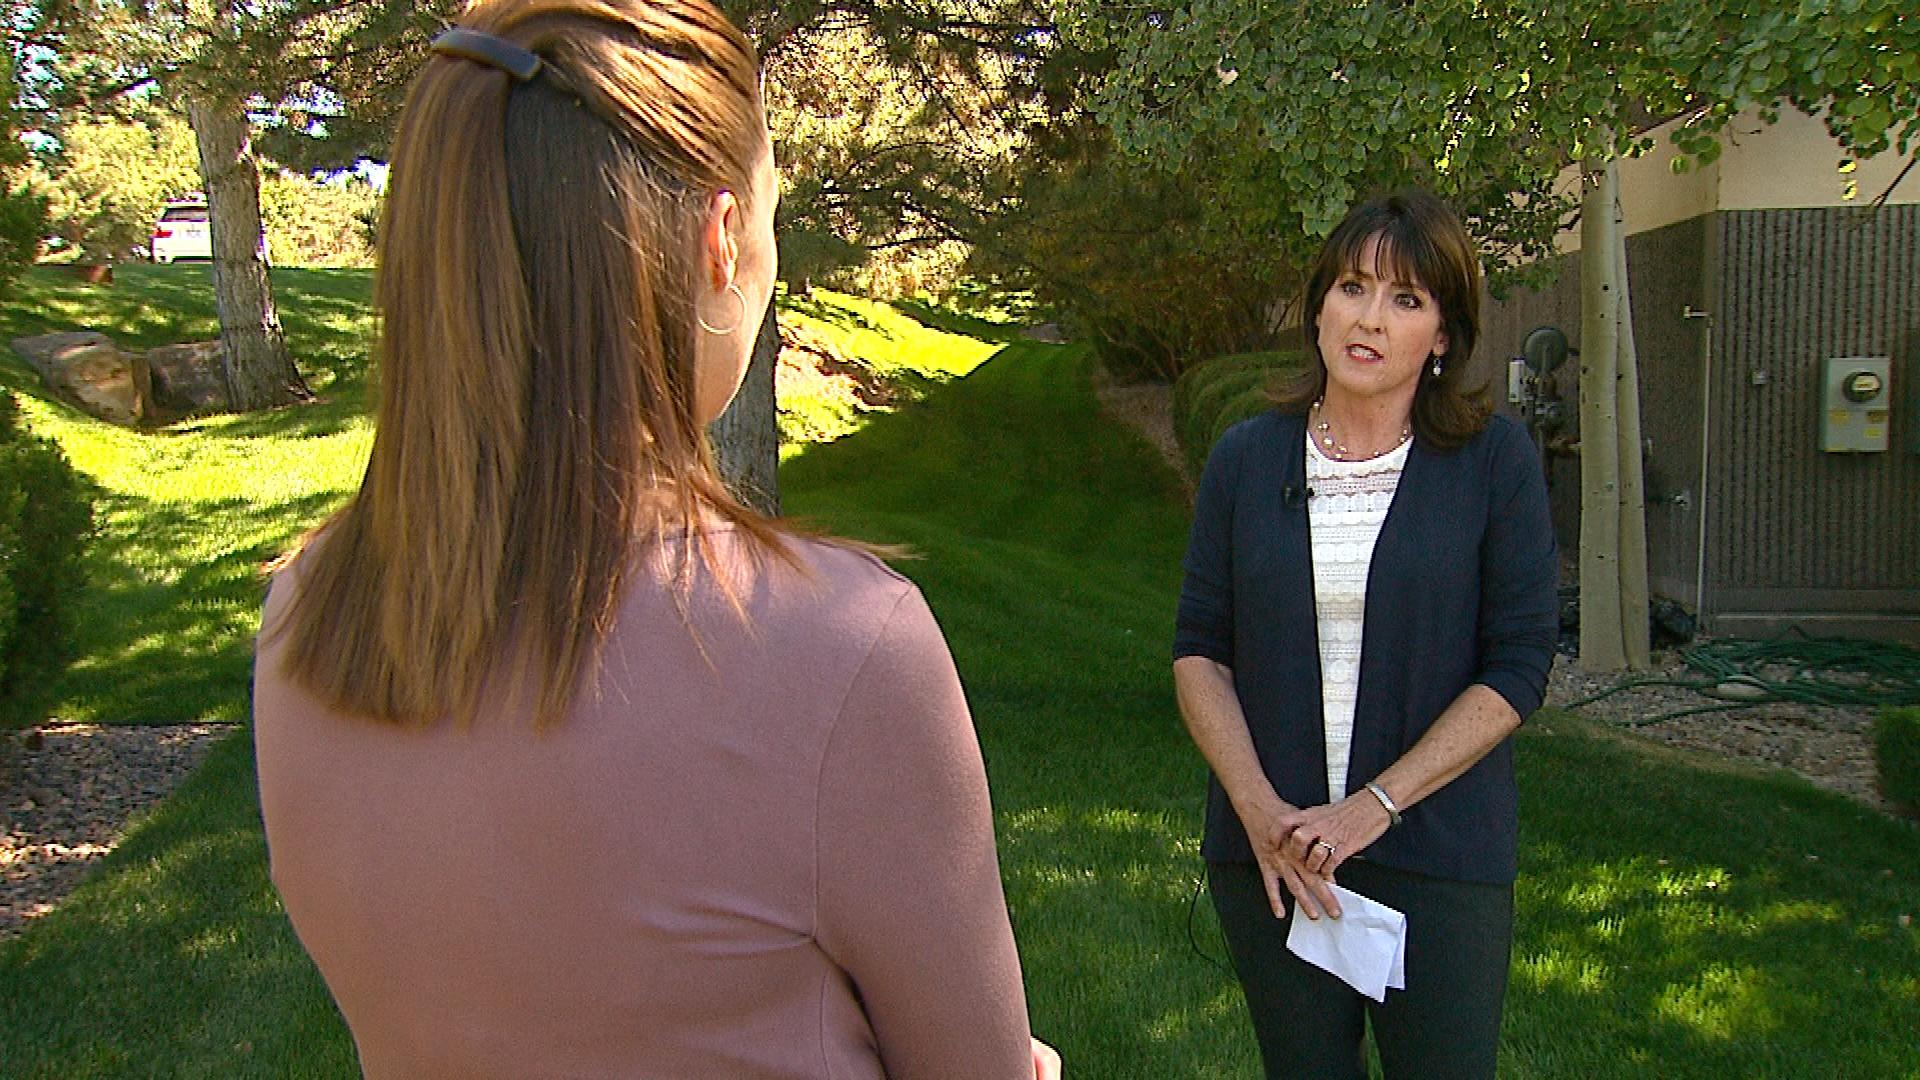 Diane Carlson with Smart Colorado talks with CBS4's CBS4's Melissa Garcia (creit: CBS)